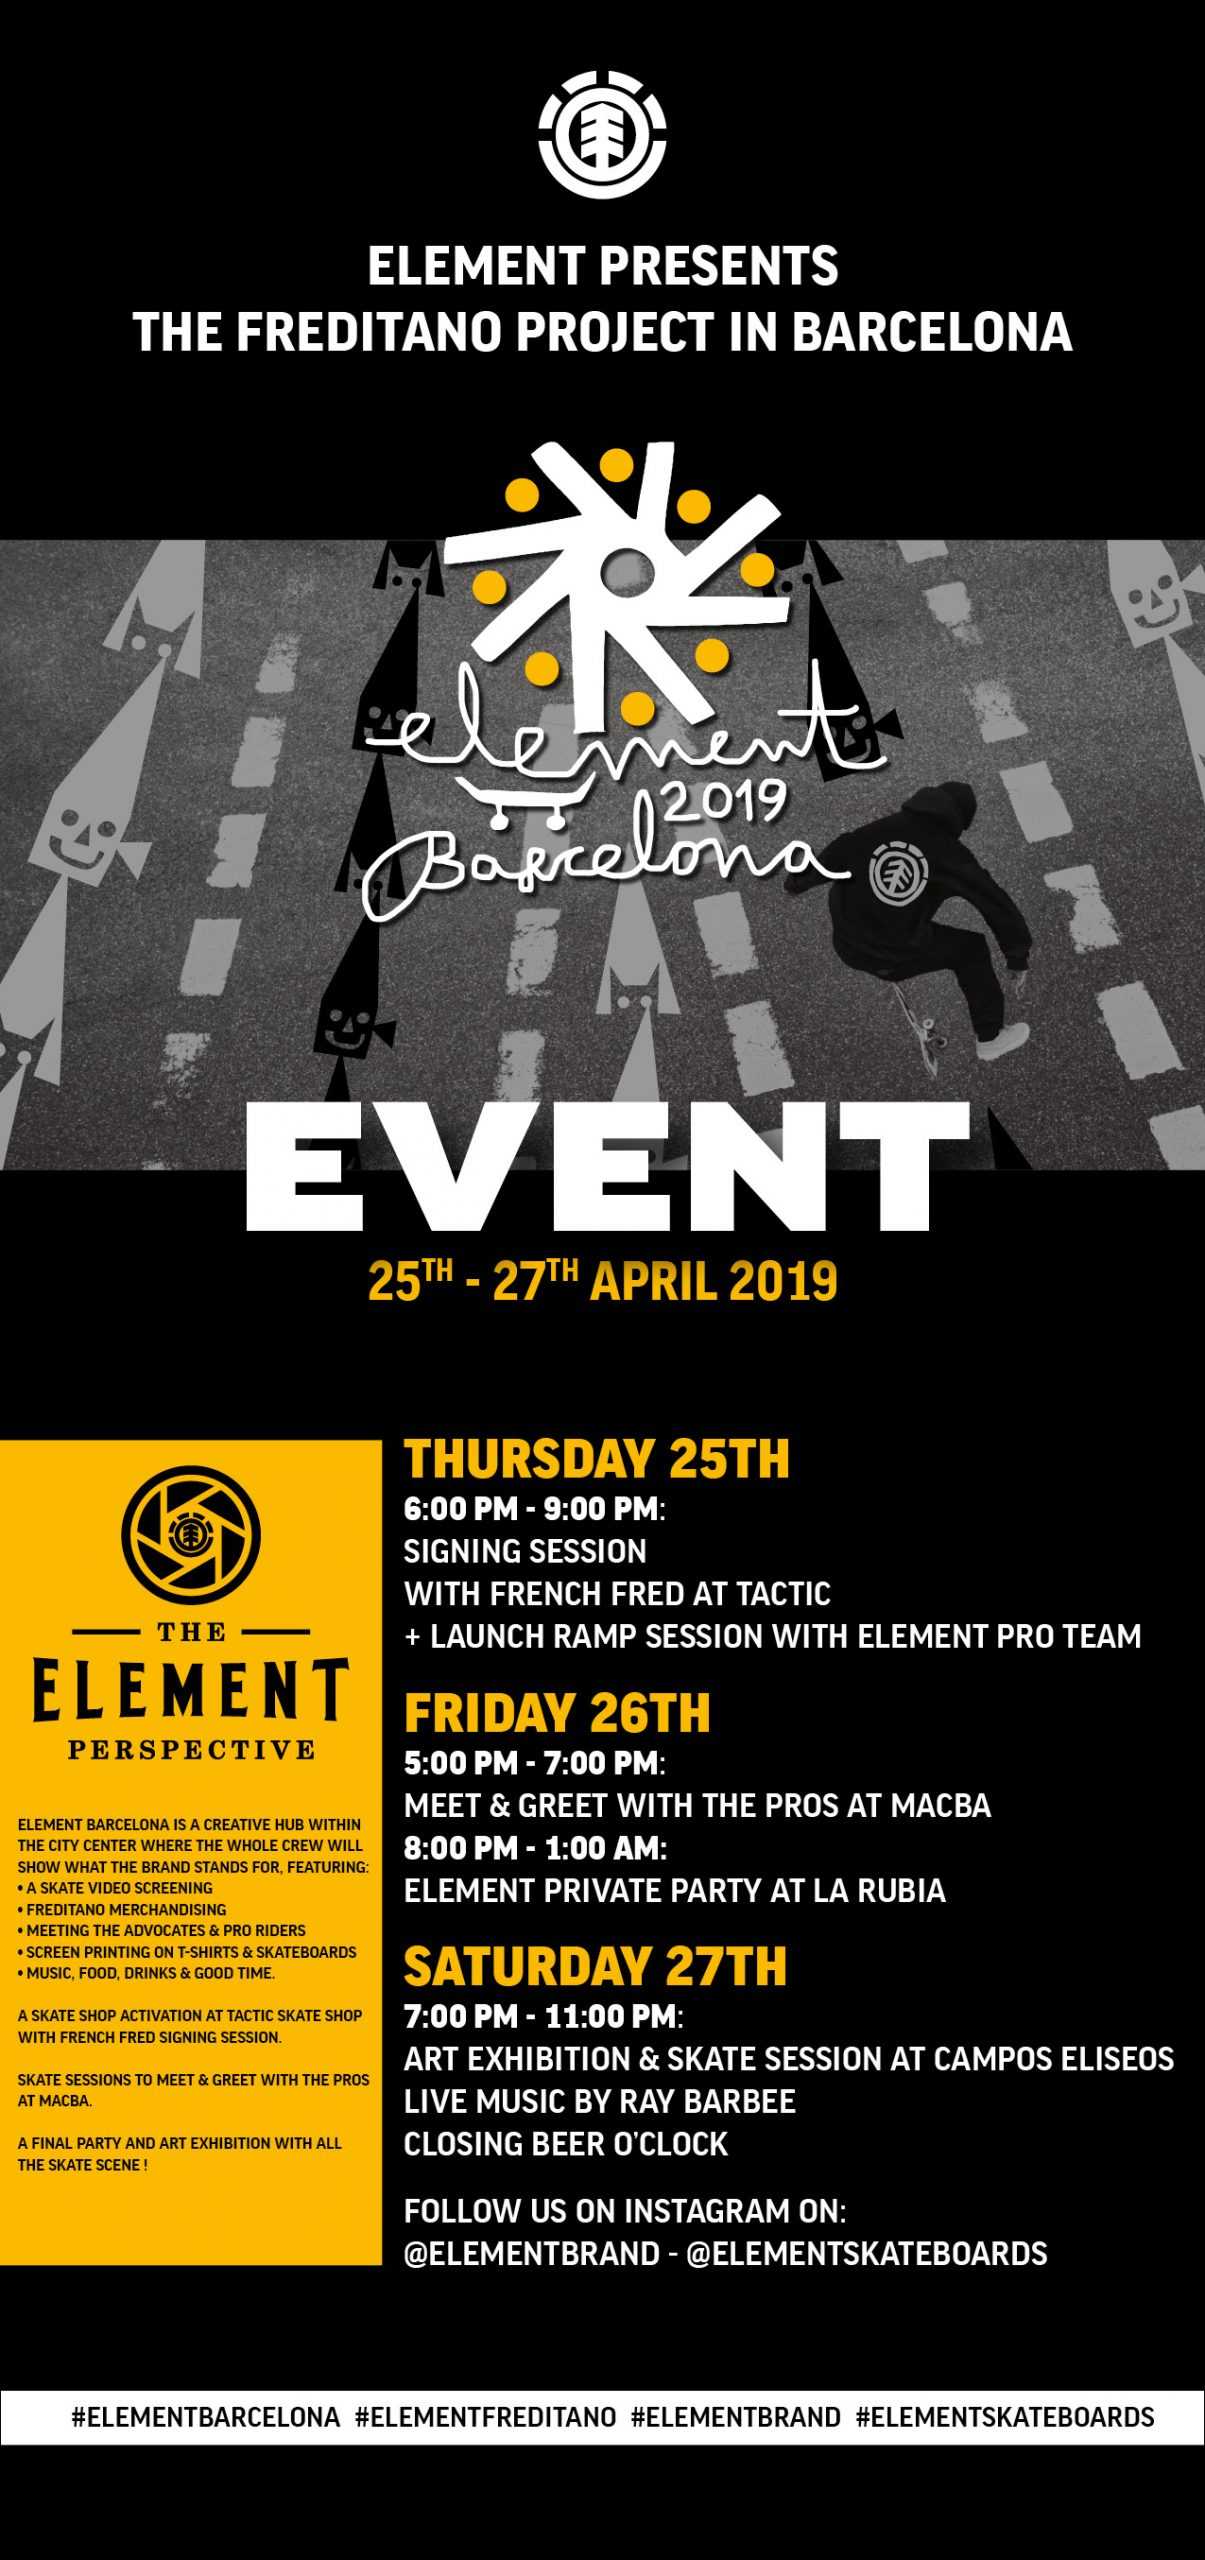 ELEMENT BARCELONA featuring the FREDITANO PROJECT